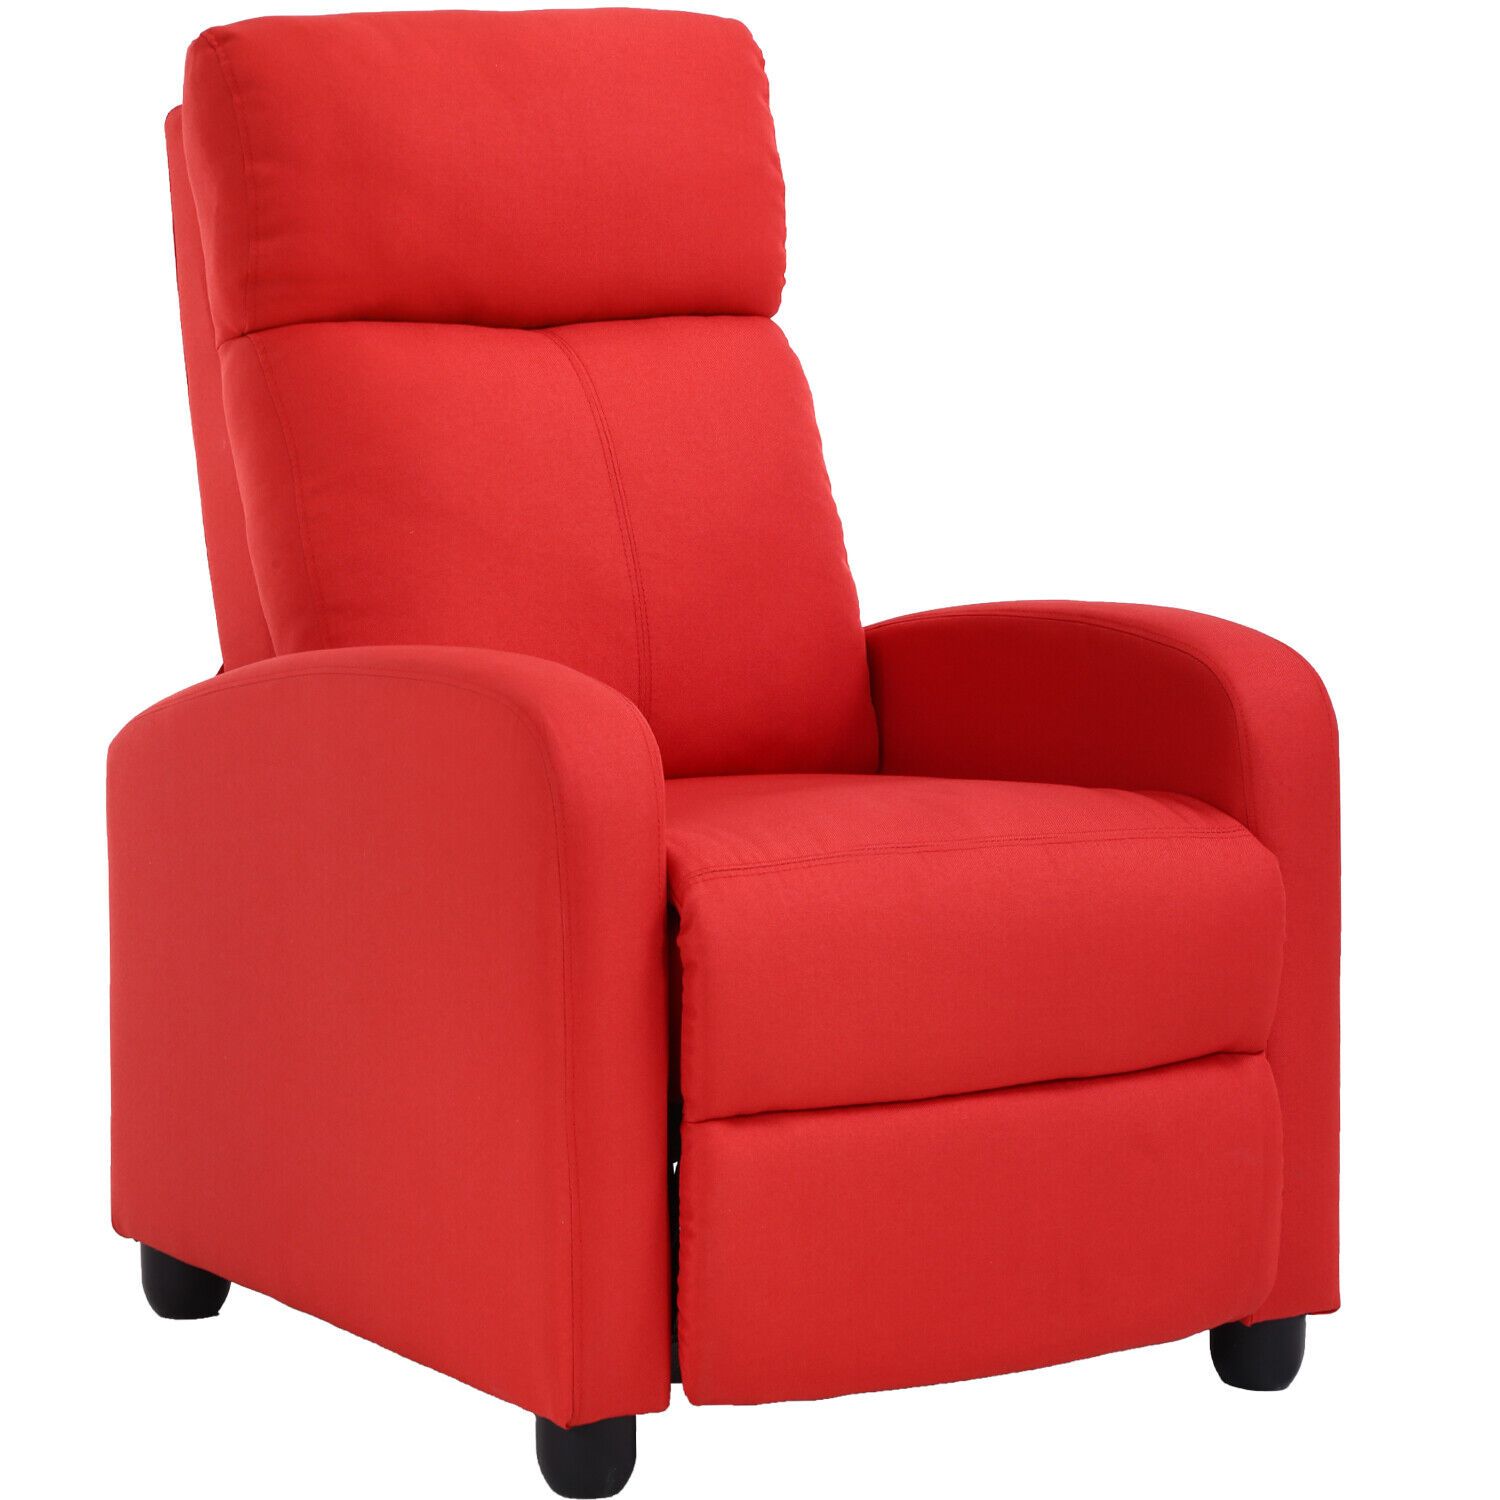 Recliner Chair Home Theater Seating Easy Lounge with Fabric Padded Seat Backrest Furniture